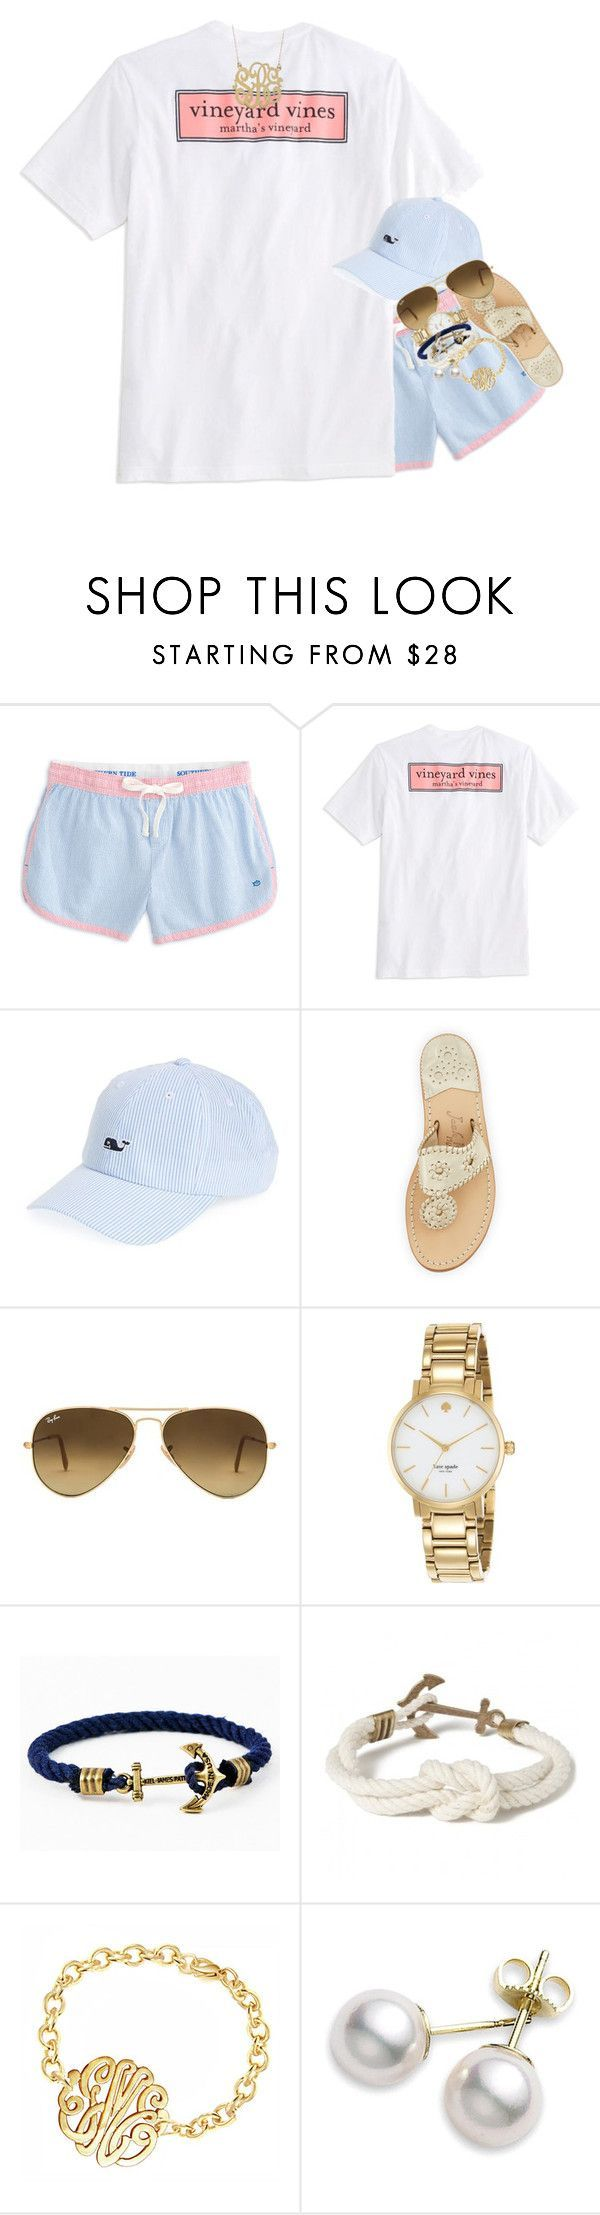 """why aren't my drafts saving"" by kate-elizabethh ❤ liked on Polyvore featuring Southern Tide, Vineyard Vines, Jack Rogers, Ray-Ban, Kate Spade, Kiel James Patrick and Mikimoto"